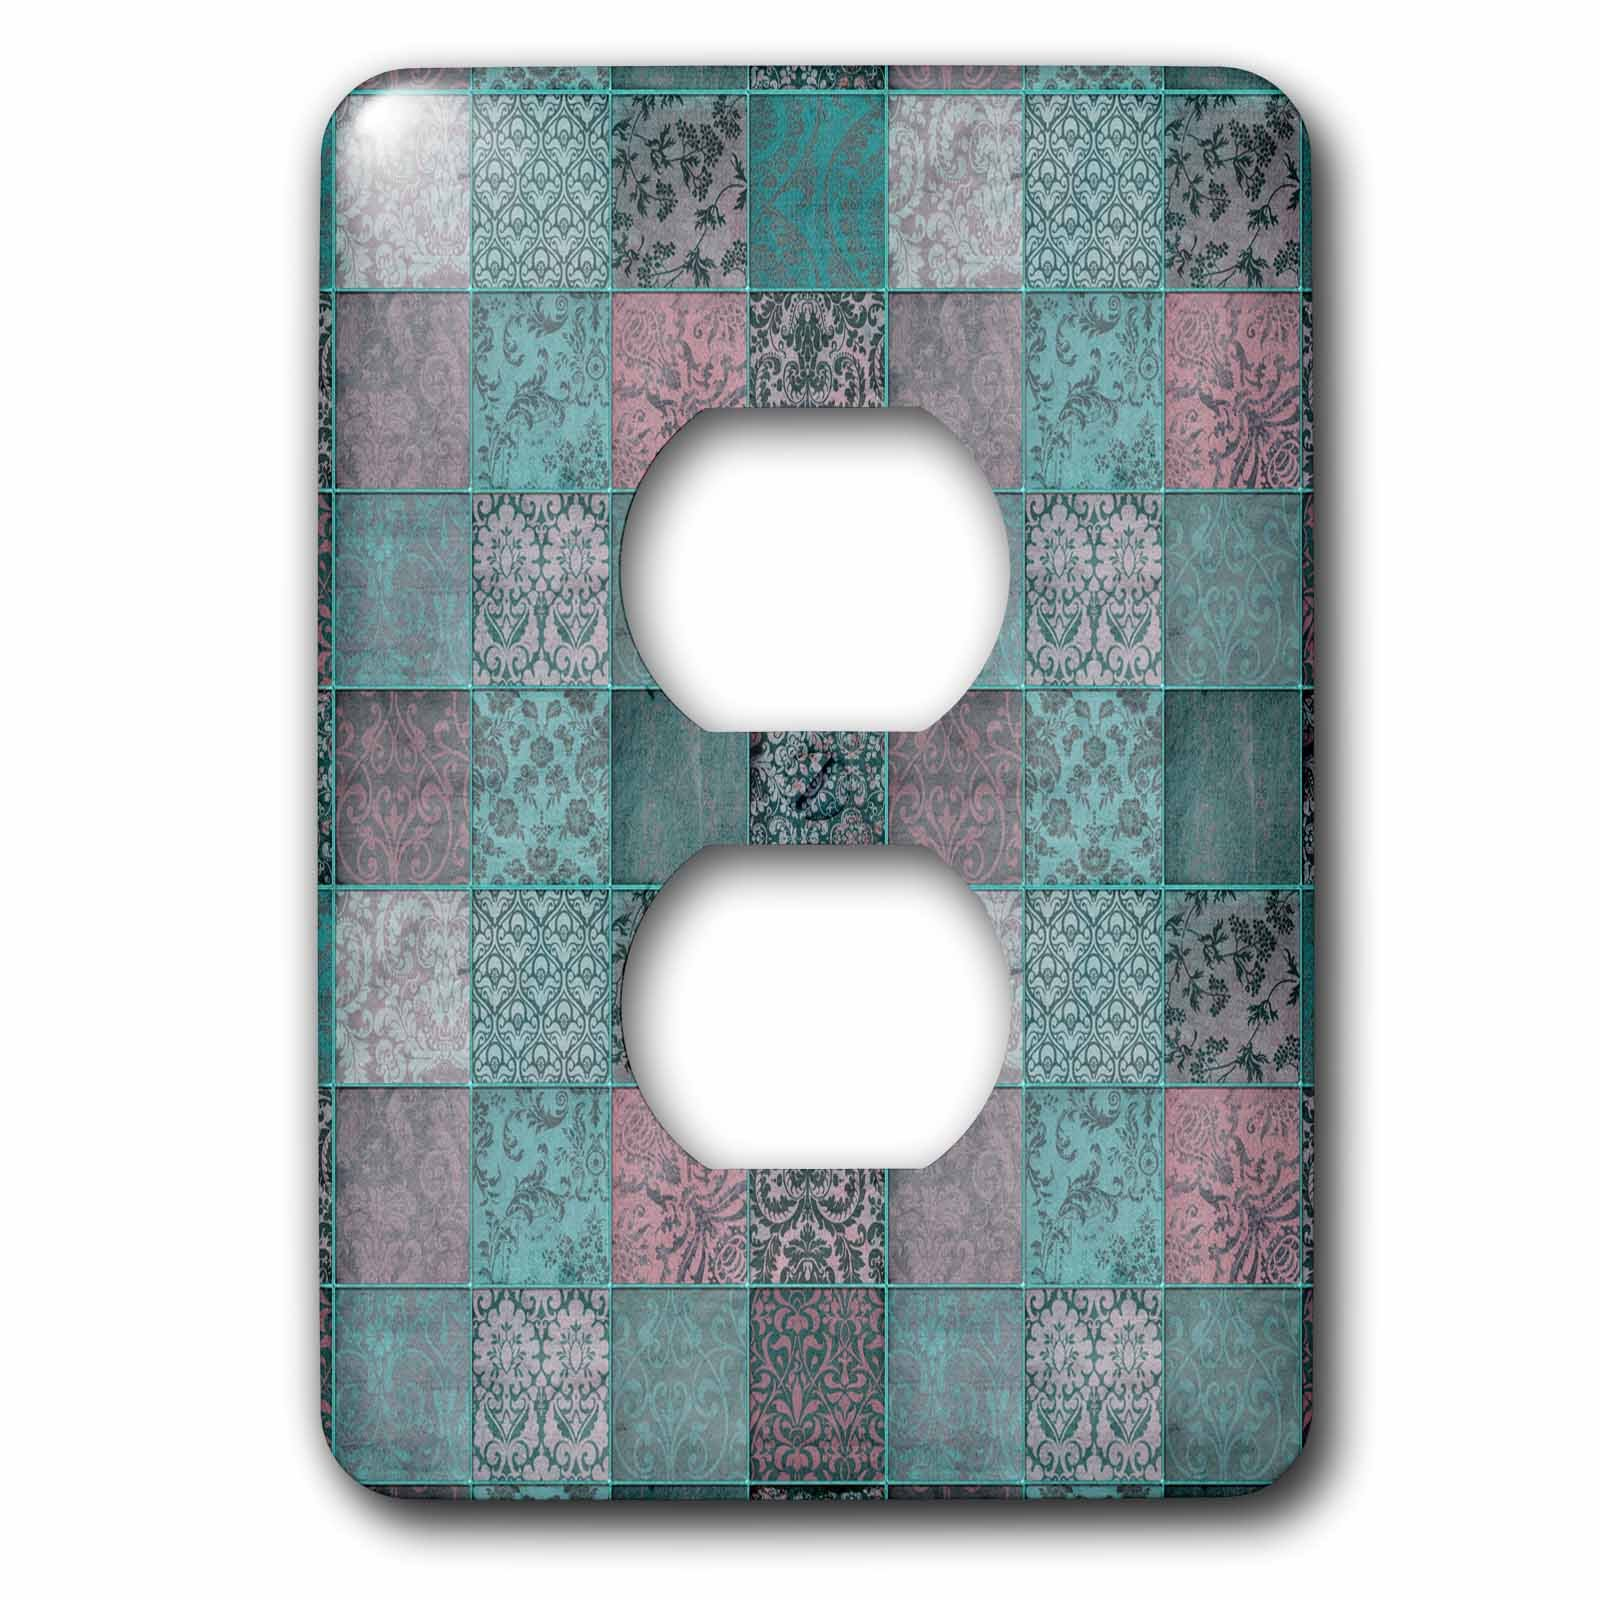 3dRose Andrea Haase Art Illustration - Vintage Patchwork Pattern Distressed Style in Teal Turquoise And Pink - Light Switch Covers - 2 plug outlet cover (lsp_271138_6)